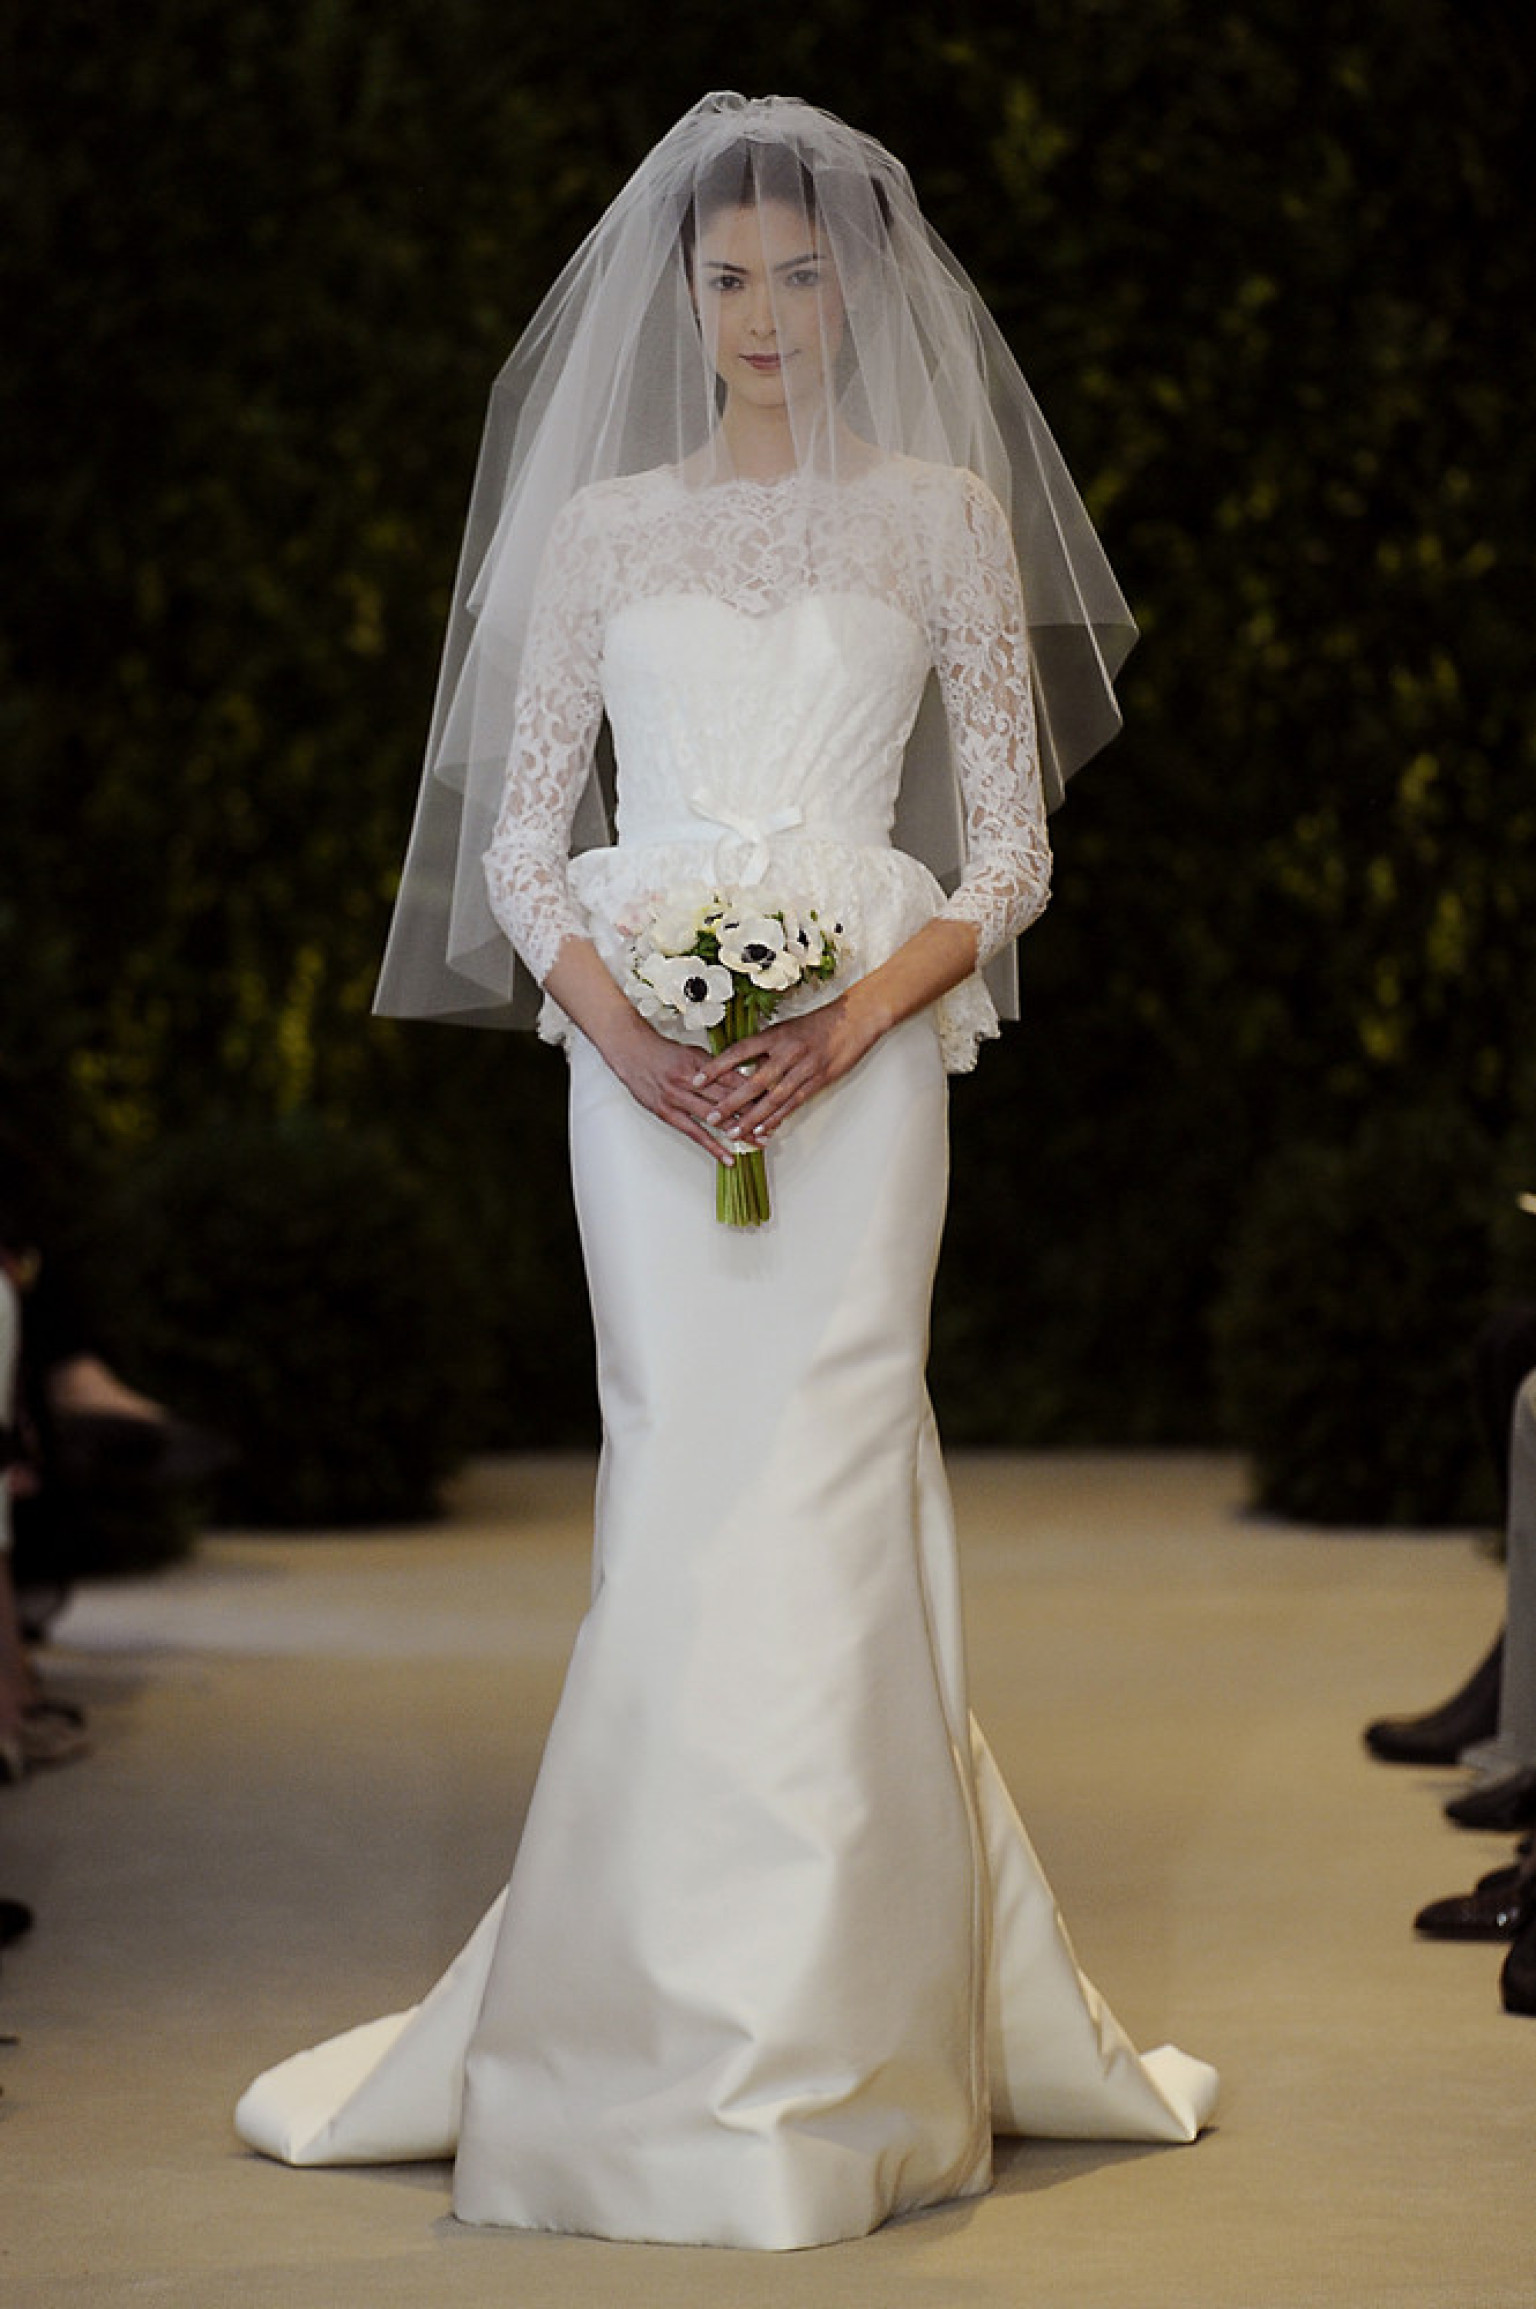 fall wedding dresses n wedding dresses for fall Fall Wedding Dresses Our Picks For The Best Autumn Gowns PHOTOS HuffPost